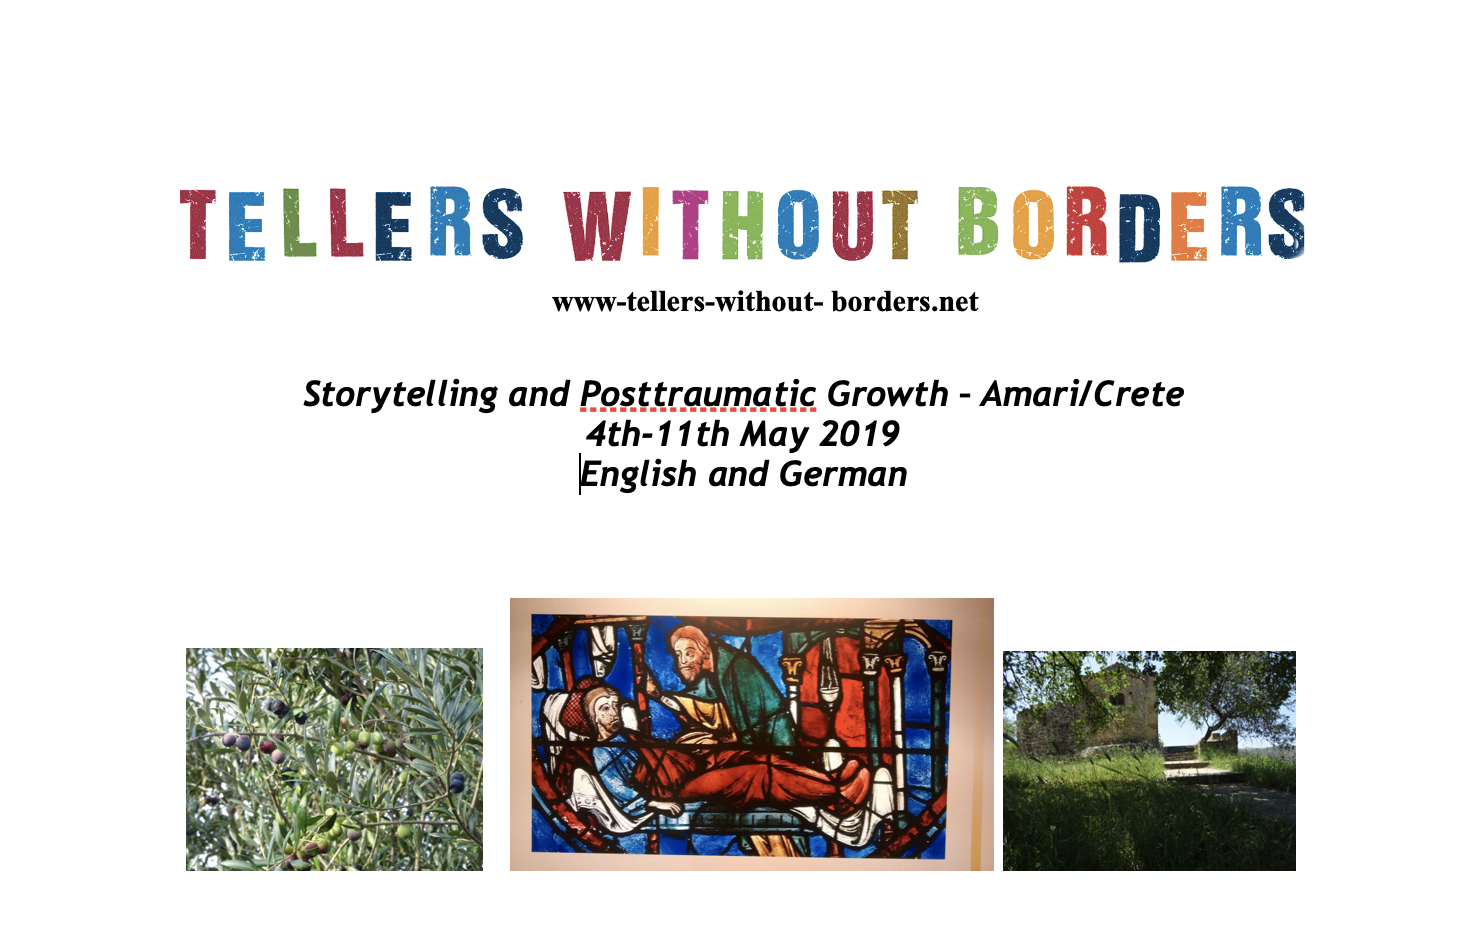 Storytelling and Posttraumatic Growth in Amari/Crete